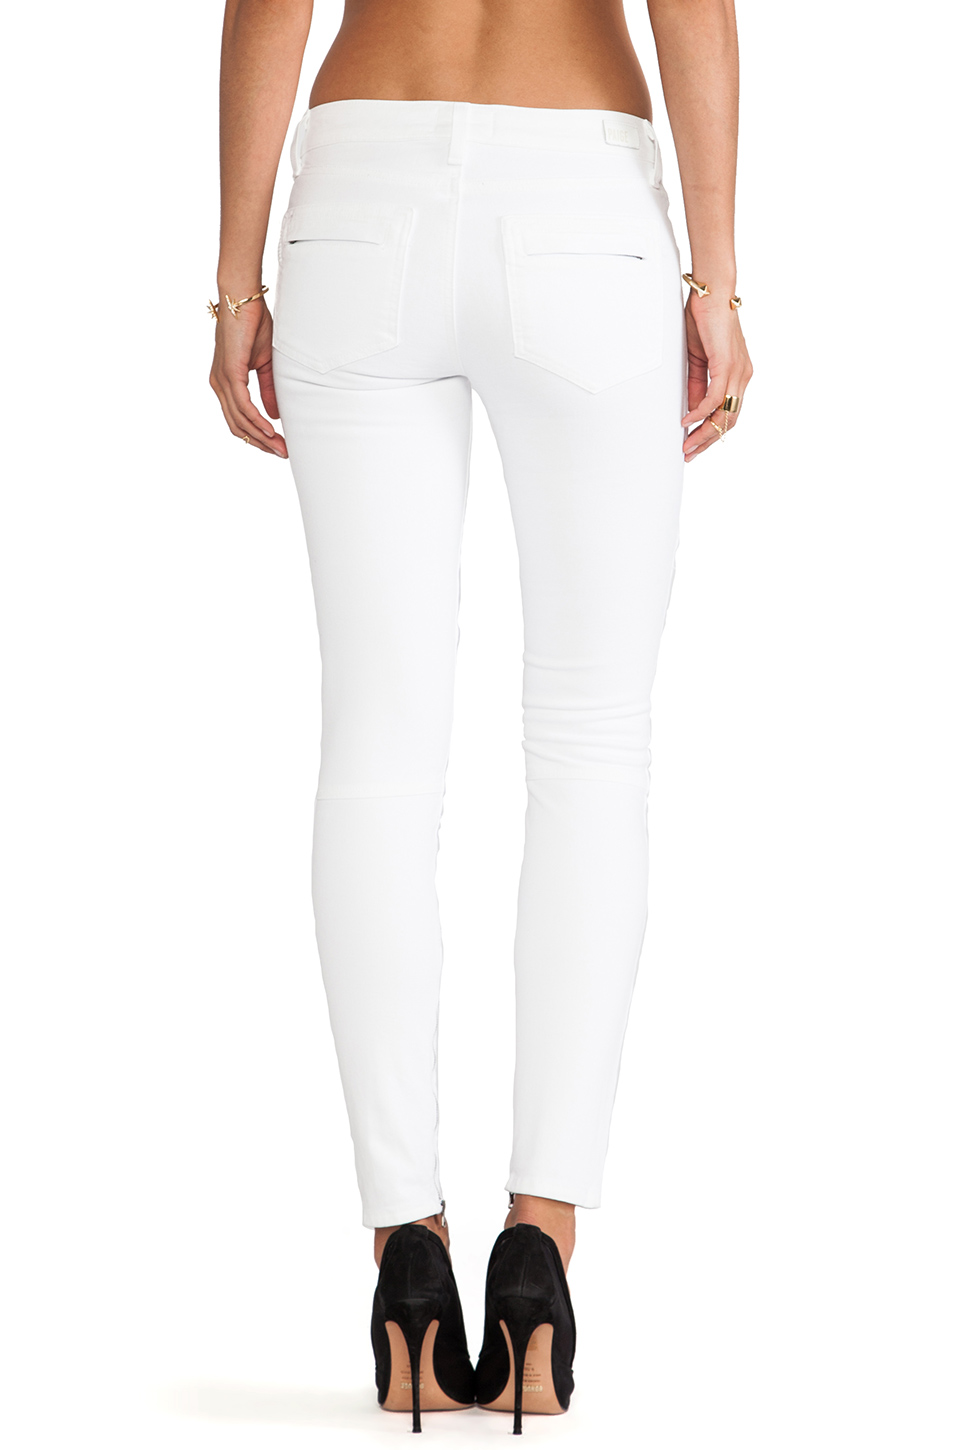 Paige Denim Marley in Optic White | REVOLVE